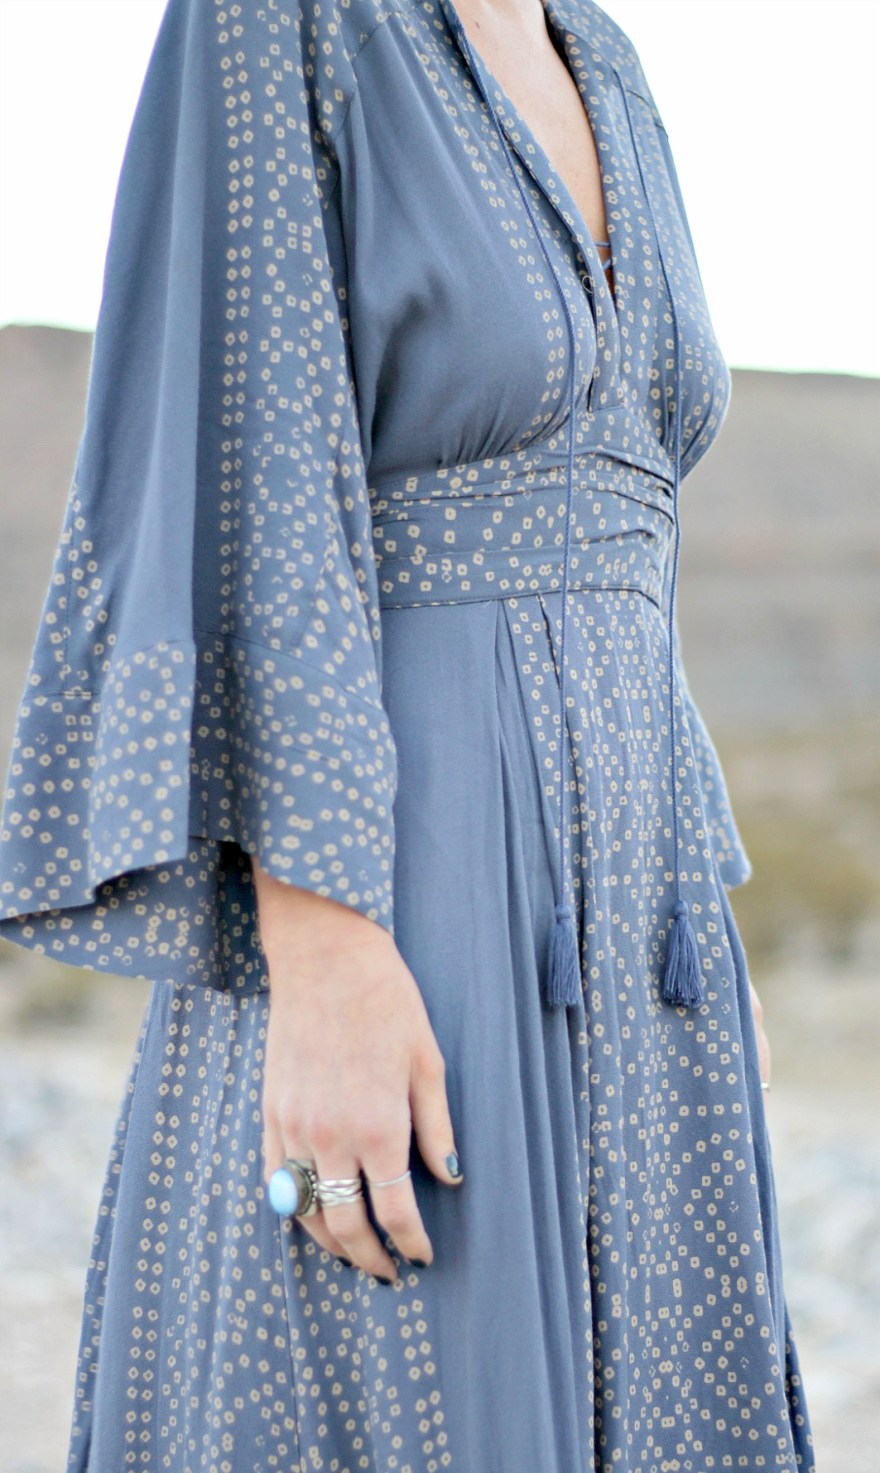 free-people-midi-dress-boho-style-boho-outfit-maxi-dress-fall-fashion-fall-trends-lindsey-simon-las-vegas-fashion-blogger-the-nomis-niche-desert-photography-7